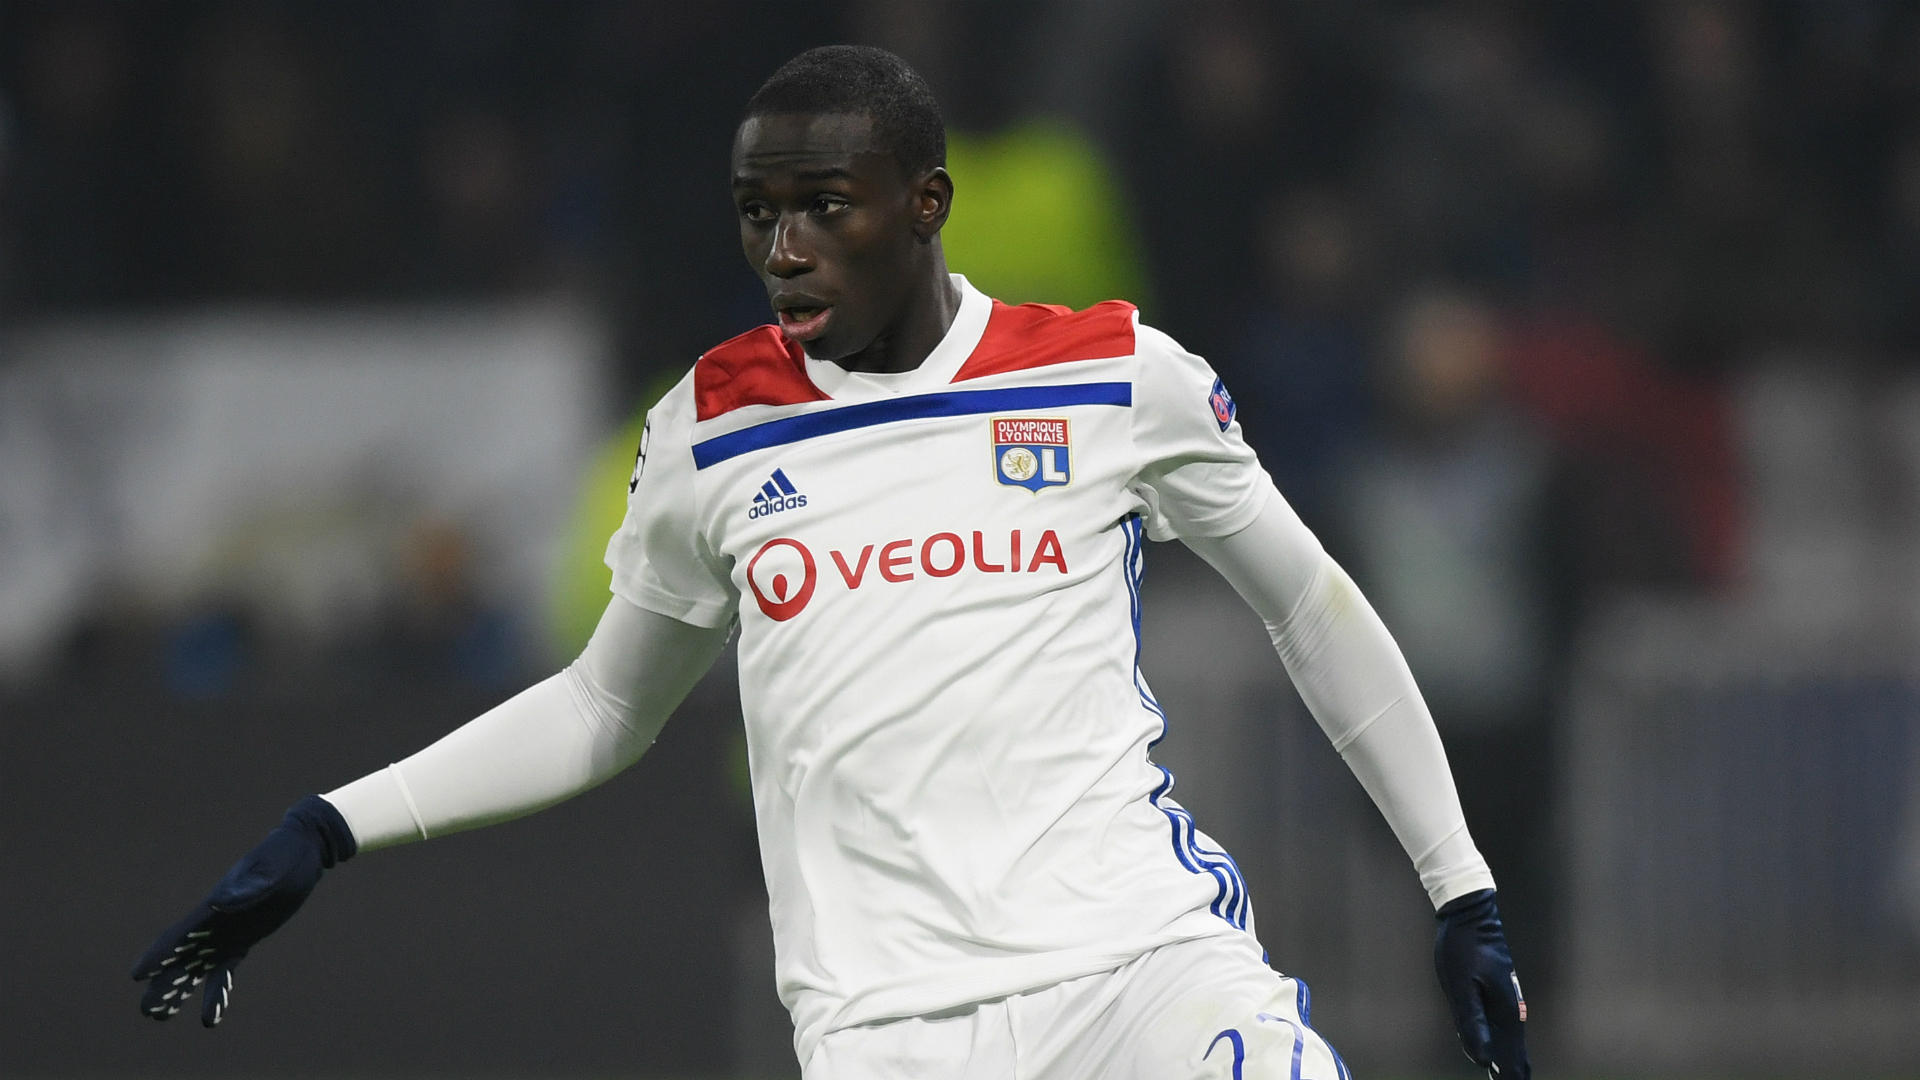 Real Madrid sign Mendy for €48m